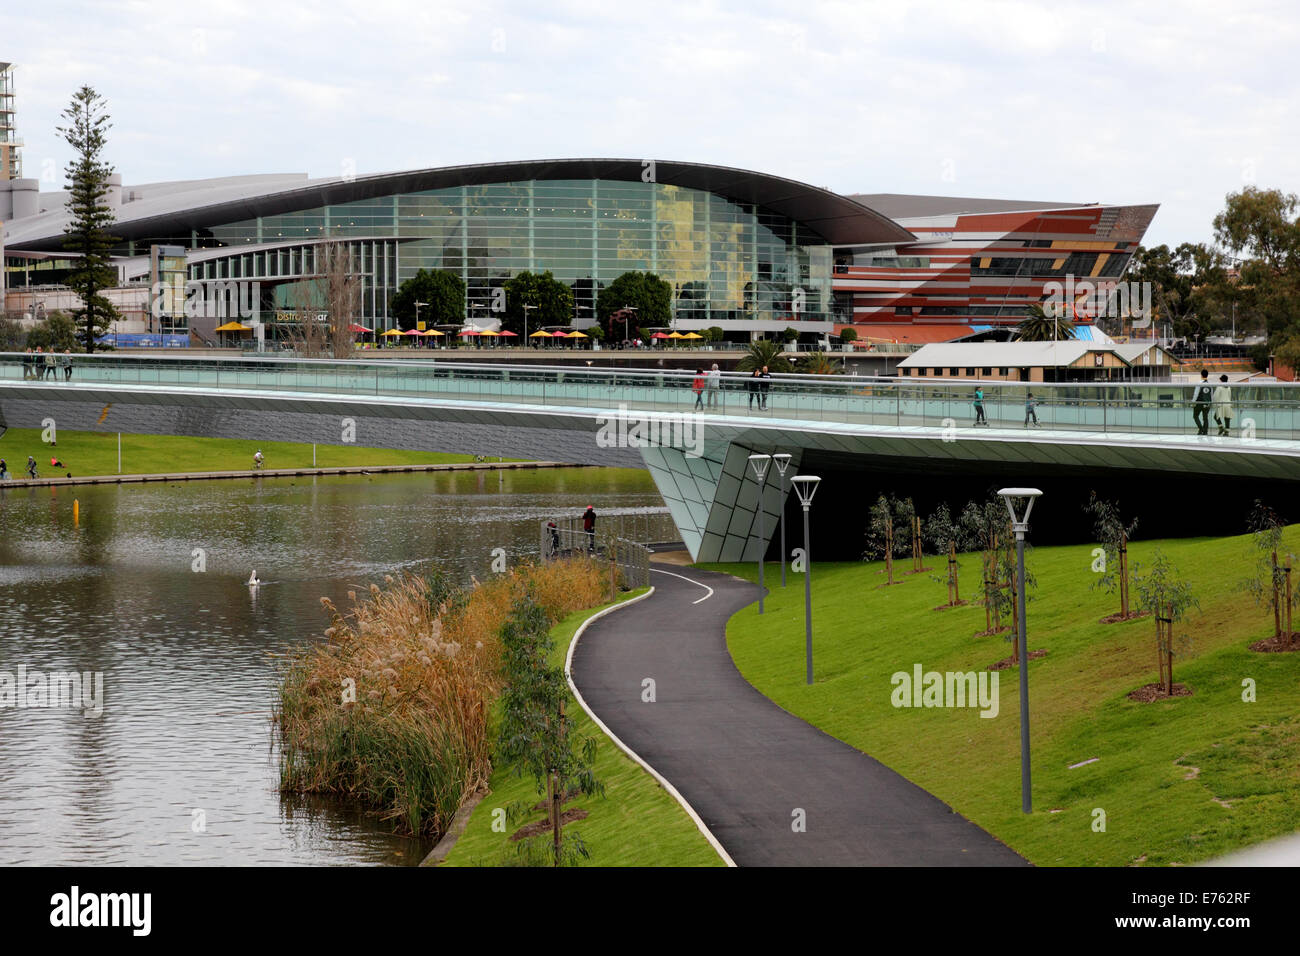 The Convention Centre and footbridge across the River Torrens in Adelaide Australia - Stock Image